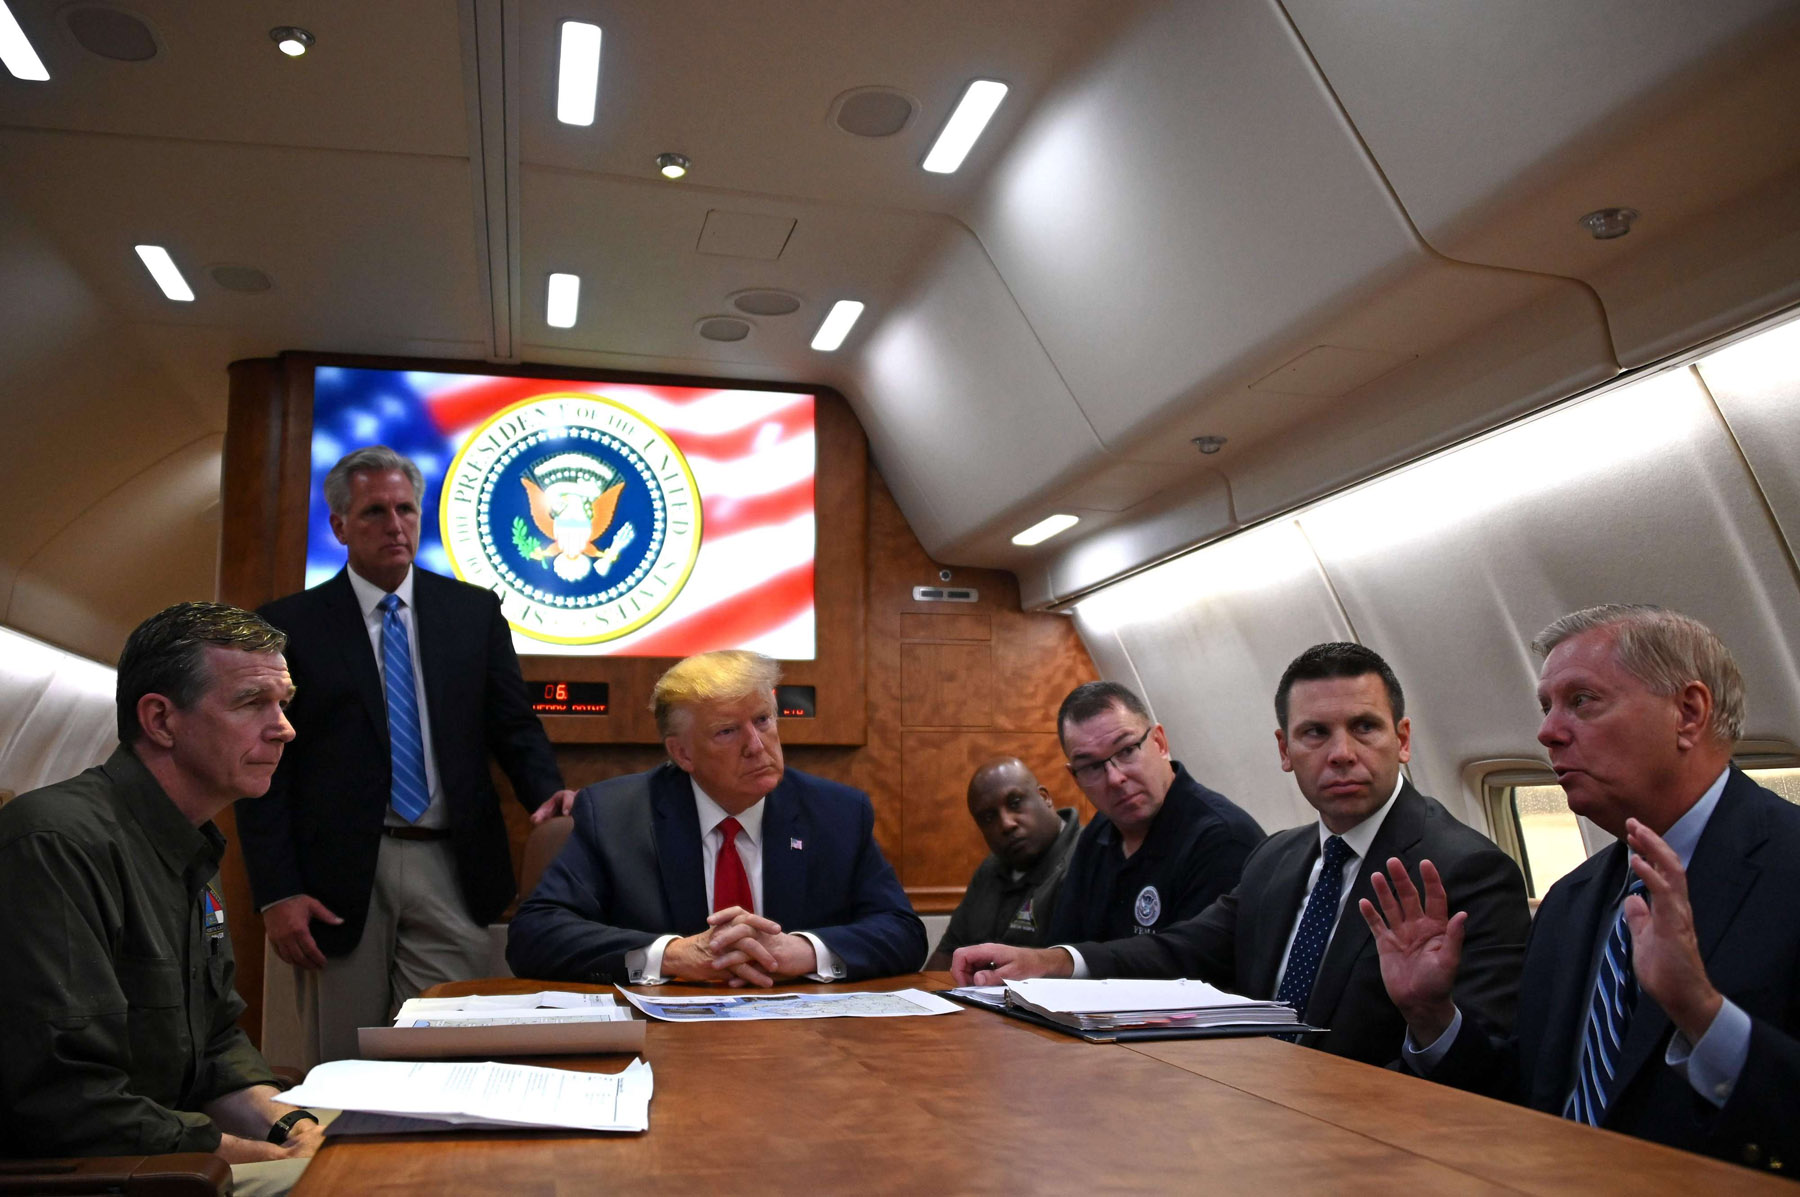 US President Donald Trump holds a meeting aboard Air Force One with North Carolina Governor Roy Cooper (L), House Minority Leader Kevin McCarthy (standing), Acting Secretary of Homeland Security Kevin McAleenan (2nd R), and US Senator Lindsey Graham, among others, September 9. (AFP)